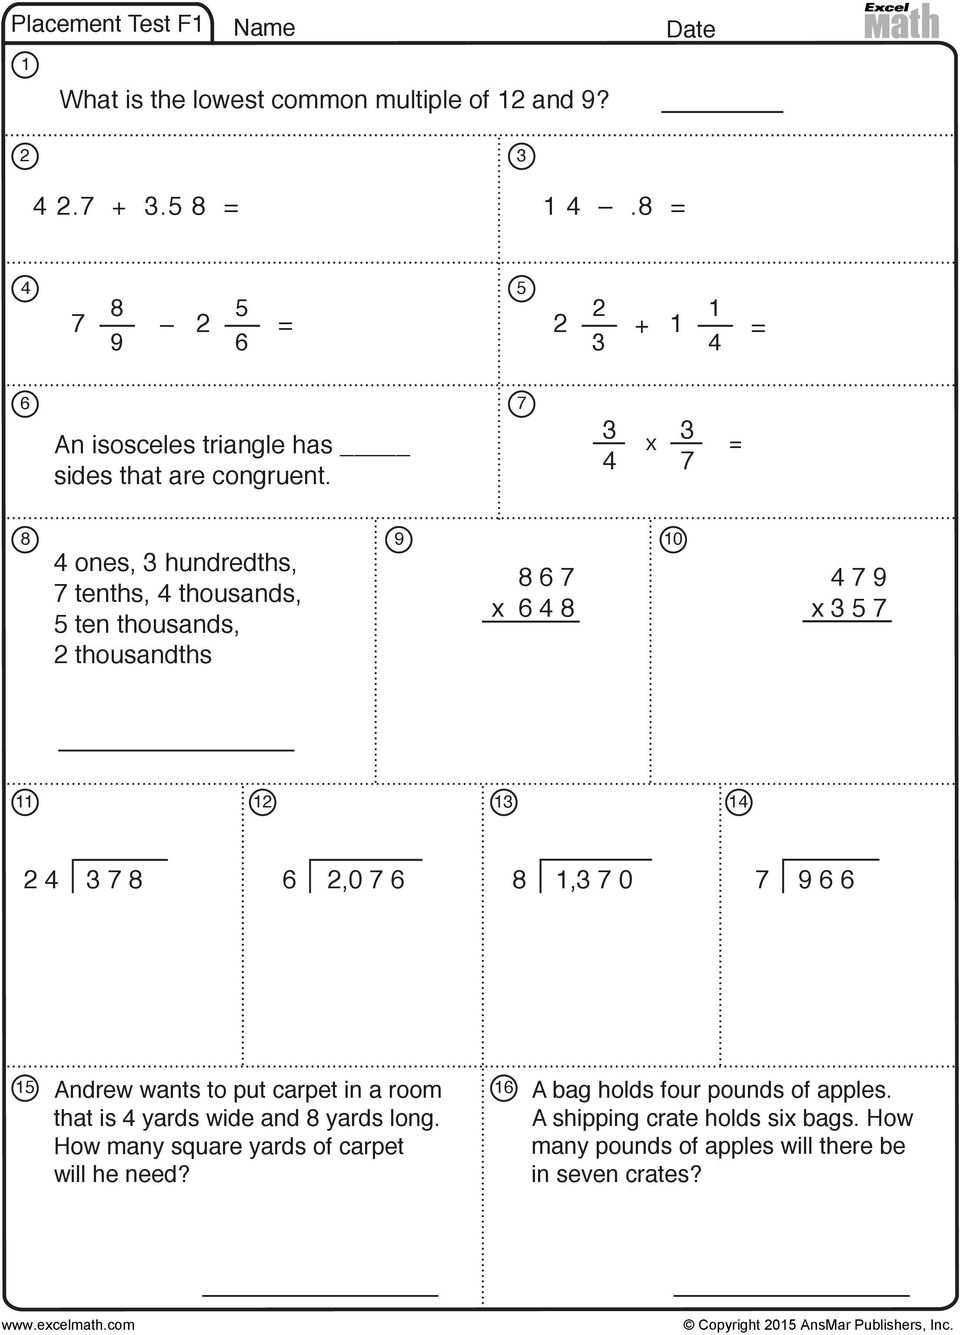 Excel Math Placement Tests A grade-level evaluation tool - PDF